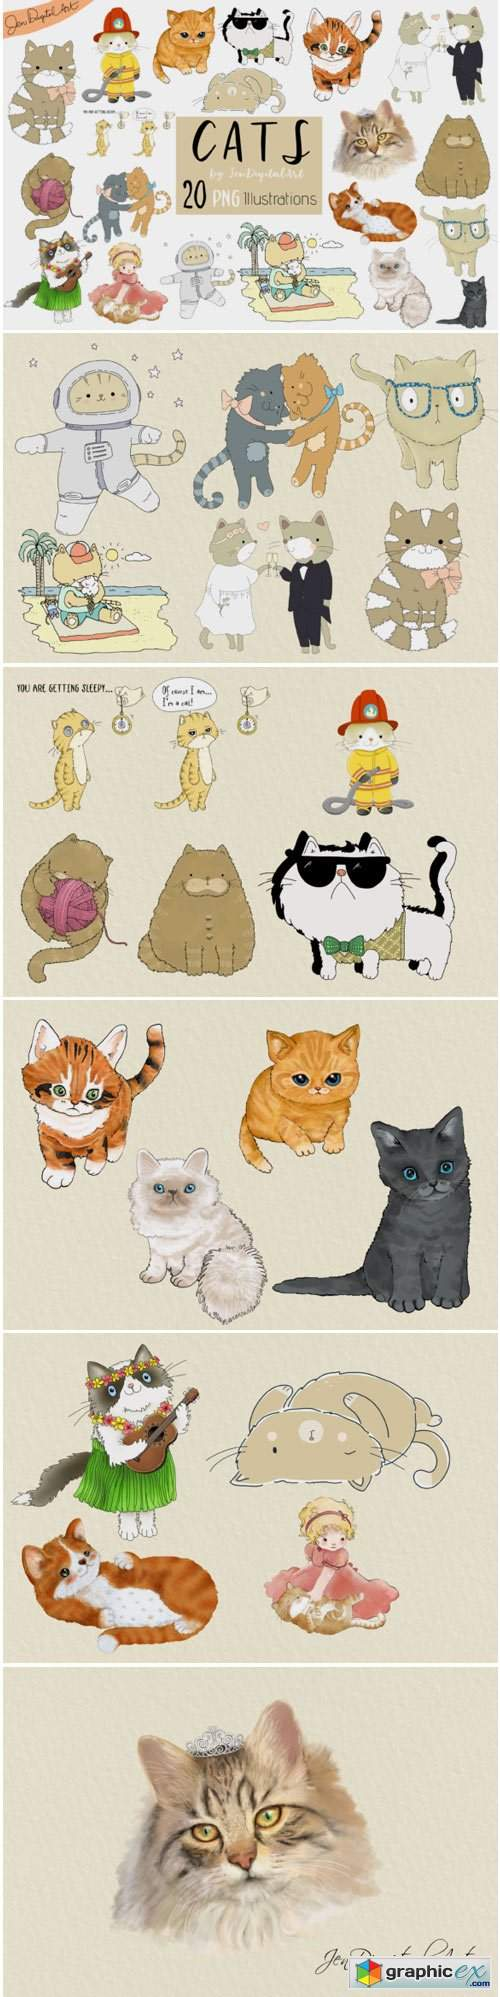 Cats 20 Assorted Illustrations